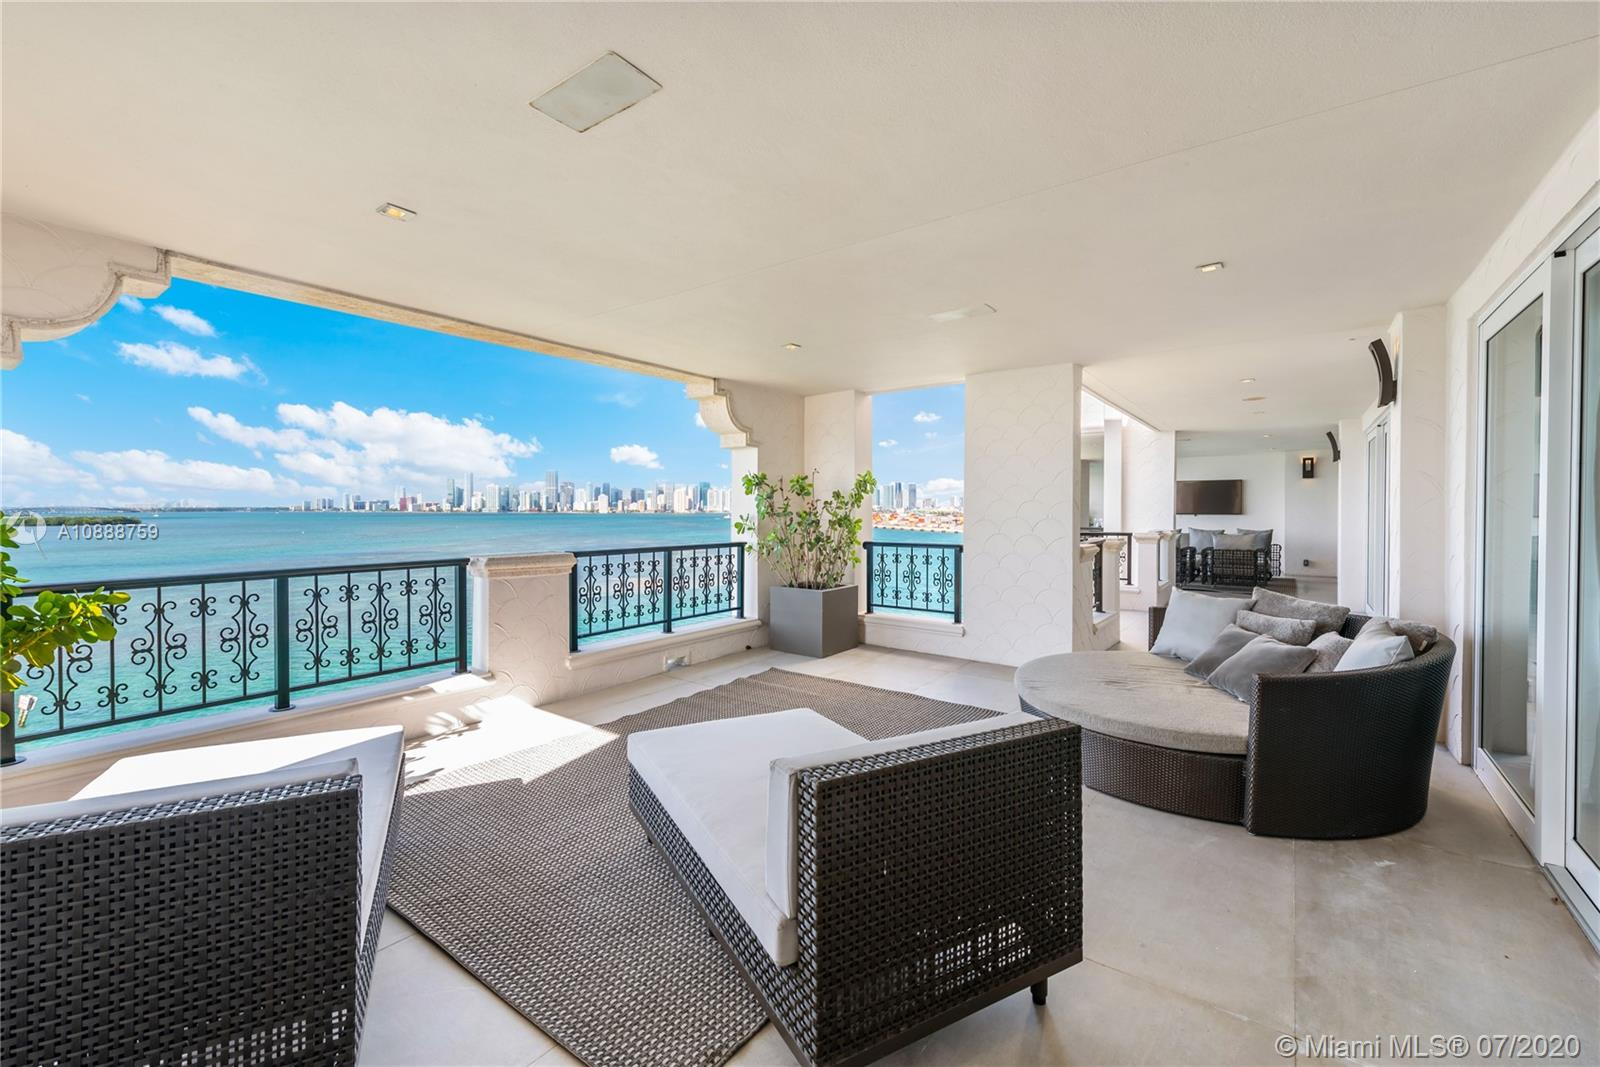 Main Property Image For 5282 Fisher Island Dr #5282